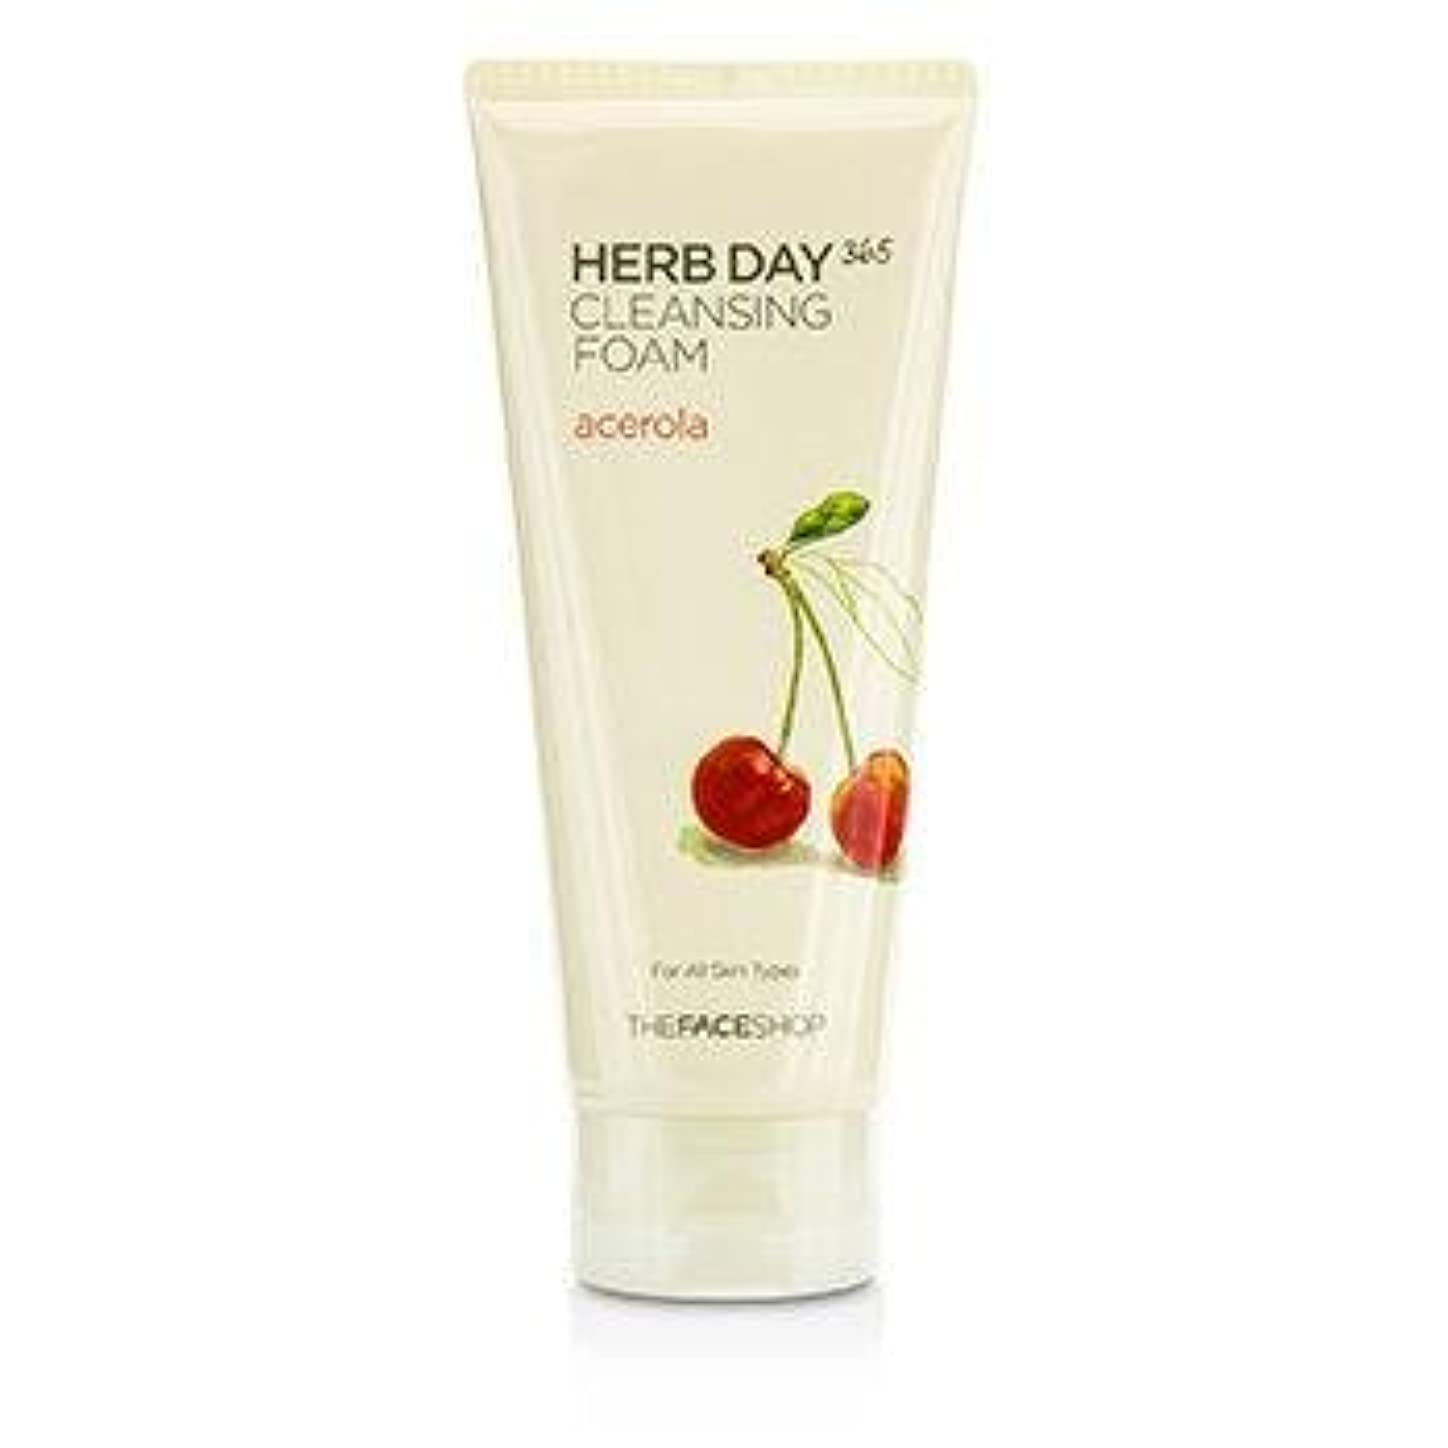 結紮アカウントビンTHE FACE SHOP Herb Day 365 Cleansing Foam Acerola (並行輸入品)